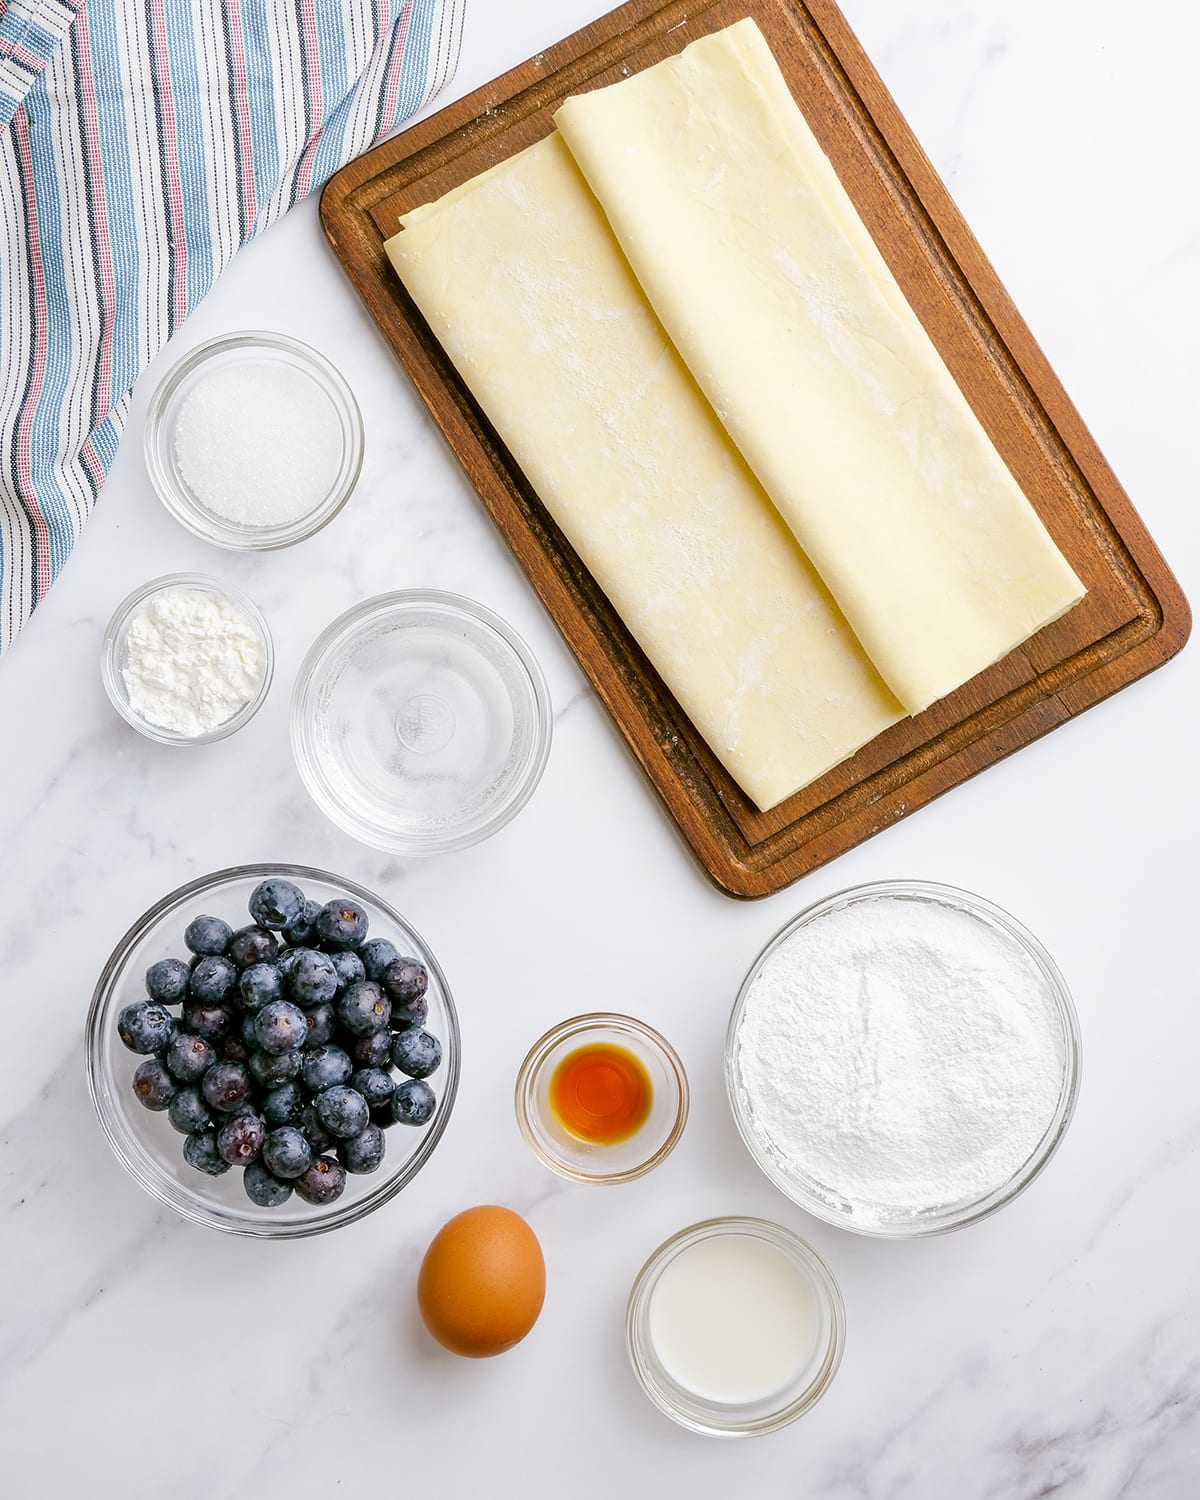 The ingredients needed to make blueberry turnovers.